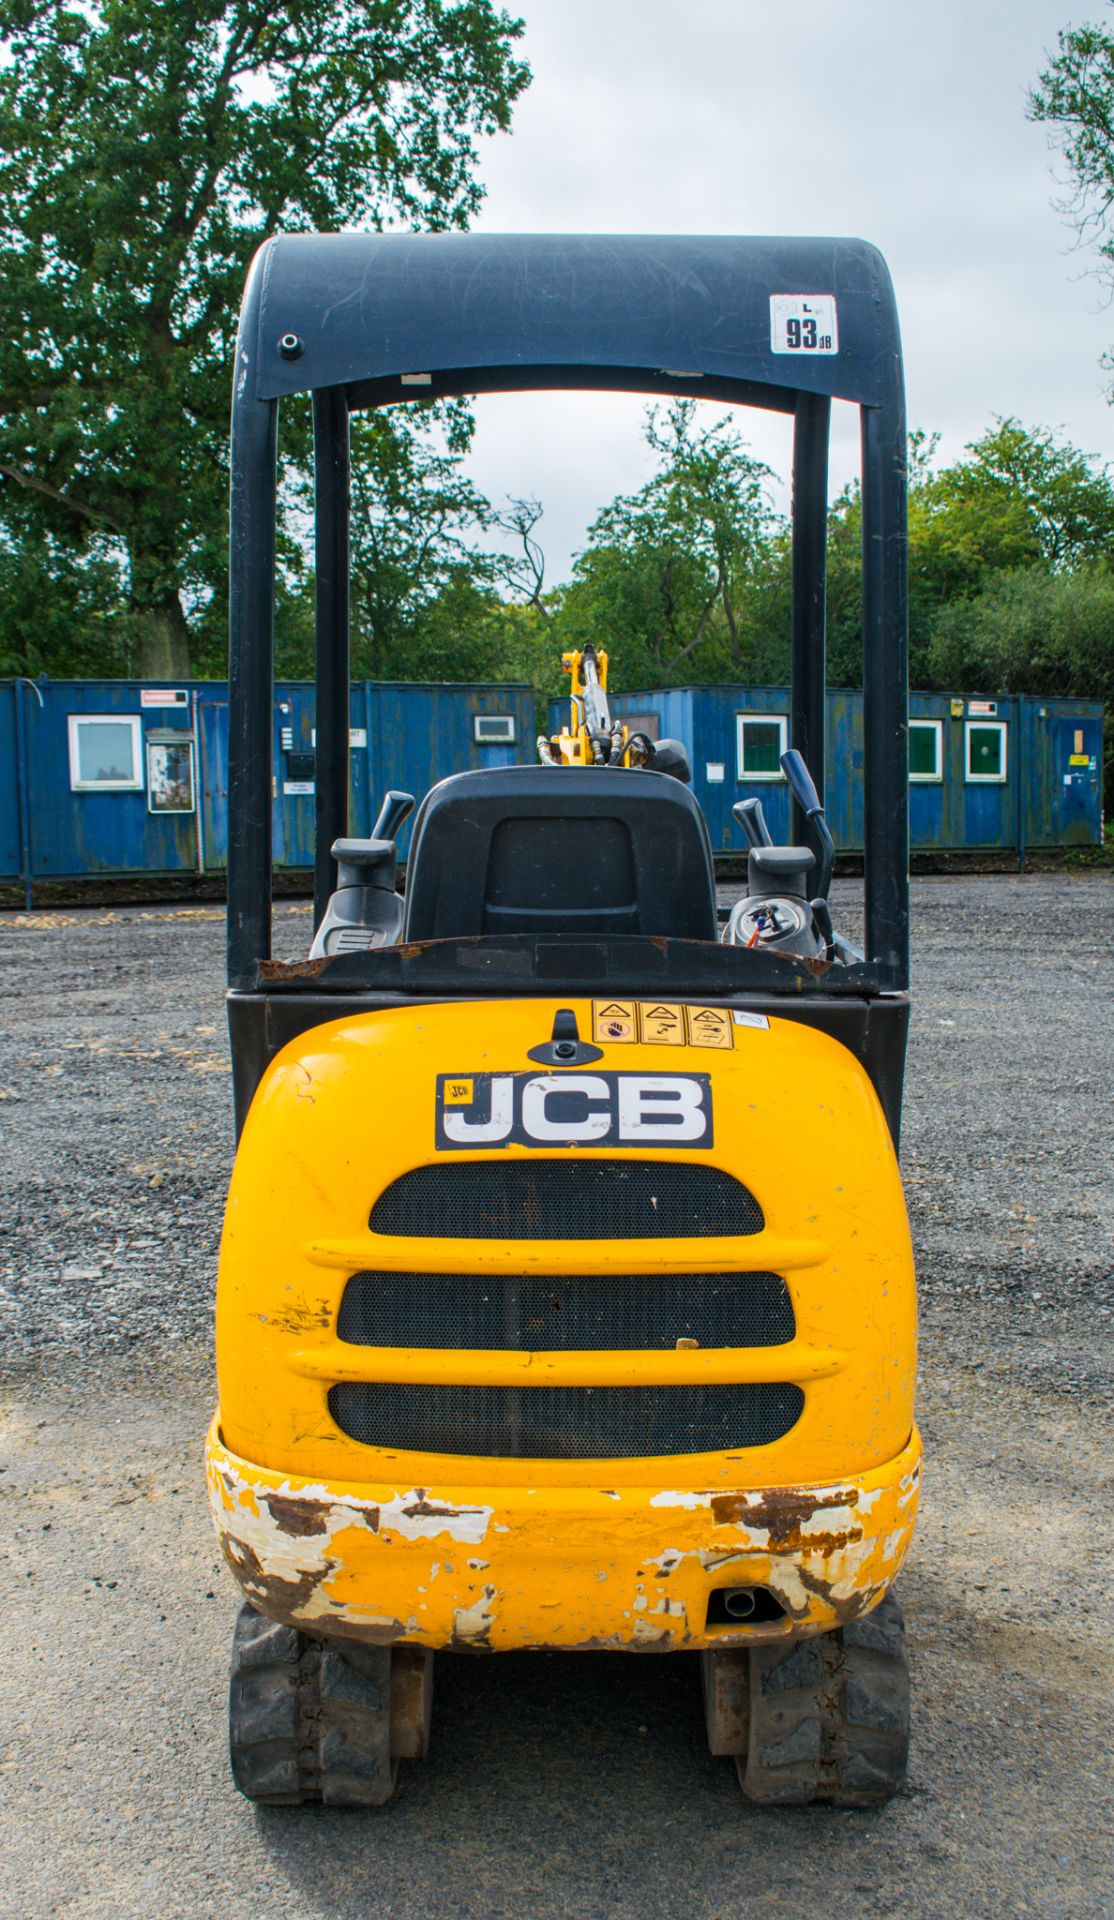 Lot 16 - JCB 8014 CTS 1.4 tonne rubber tracked mini excavator Year: 2014 S/N: 70474 Recorded Hour: 2199